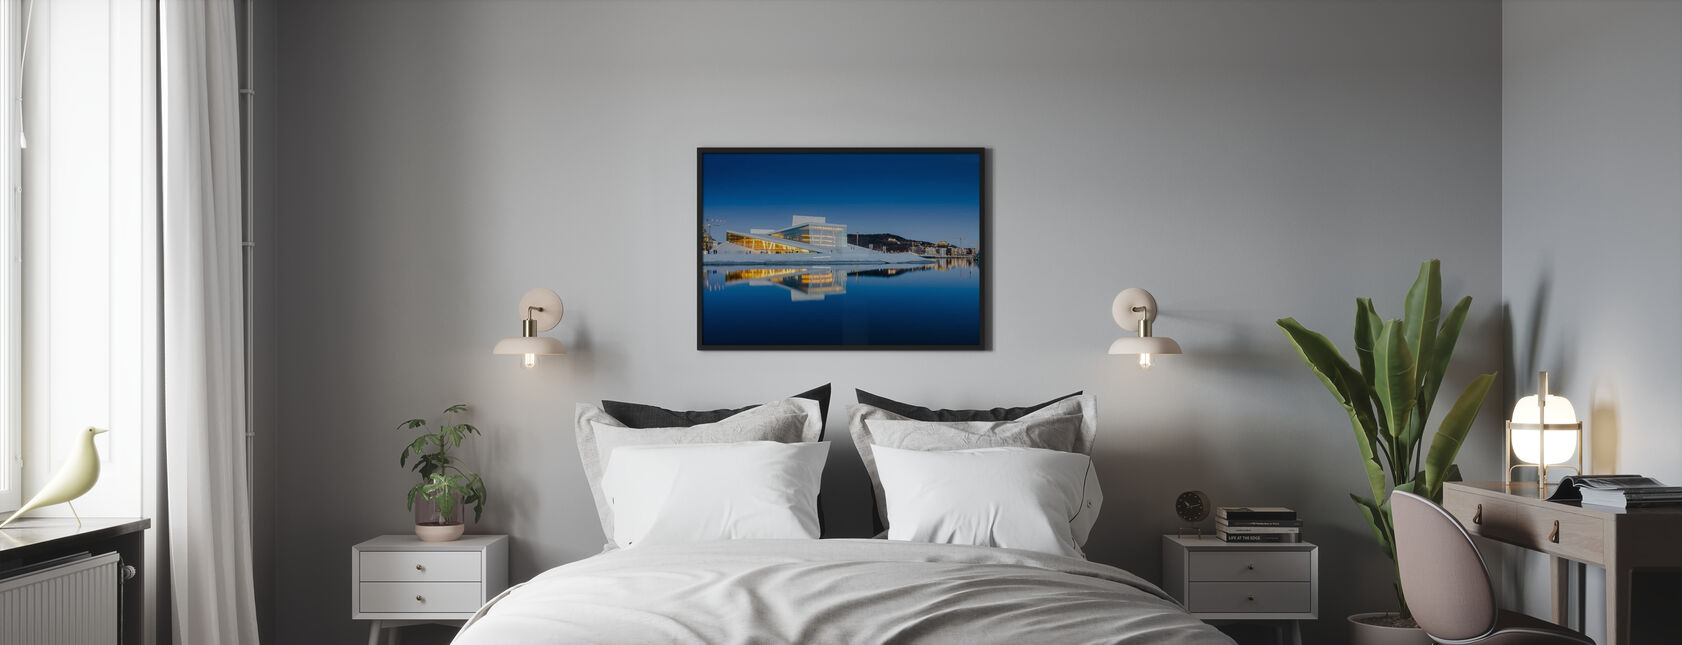 Oslo Opera House by Night - Framed print - Bedroom